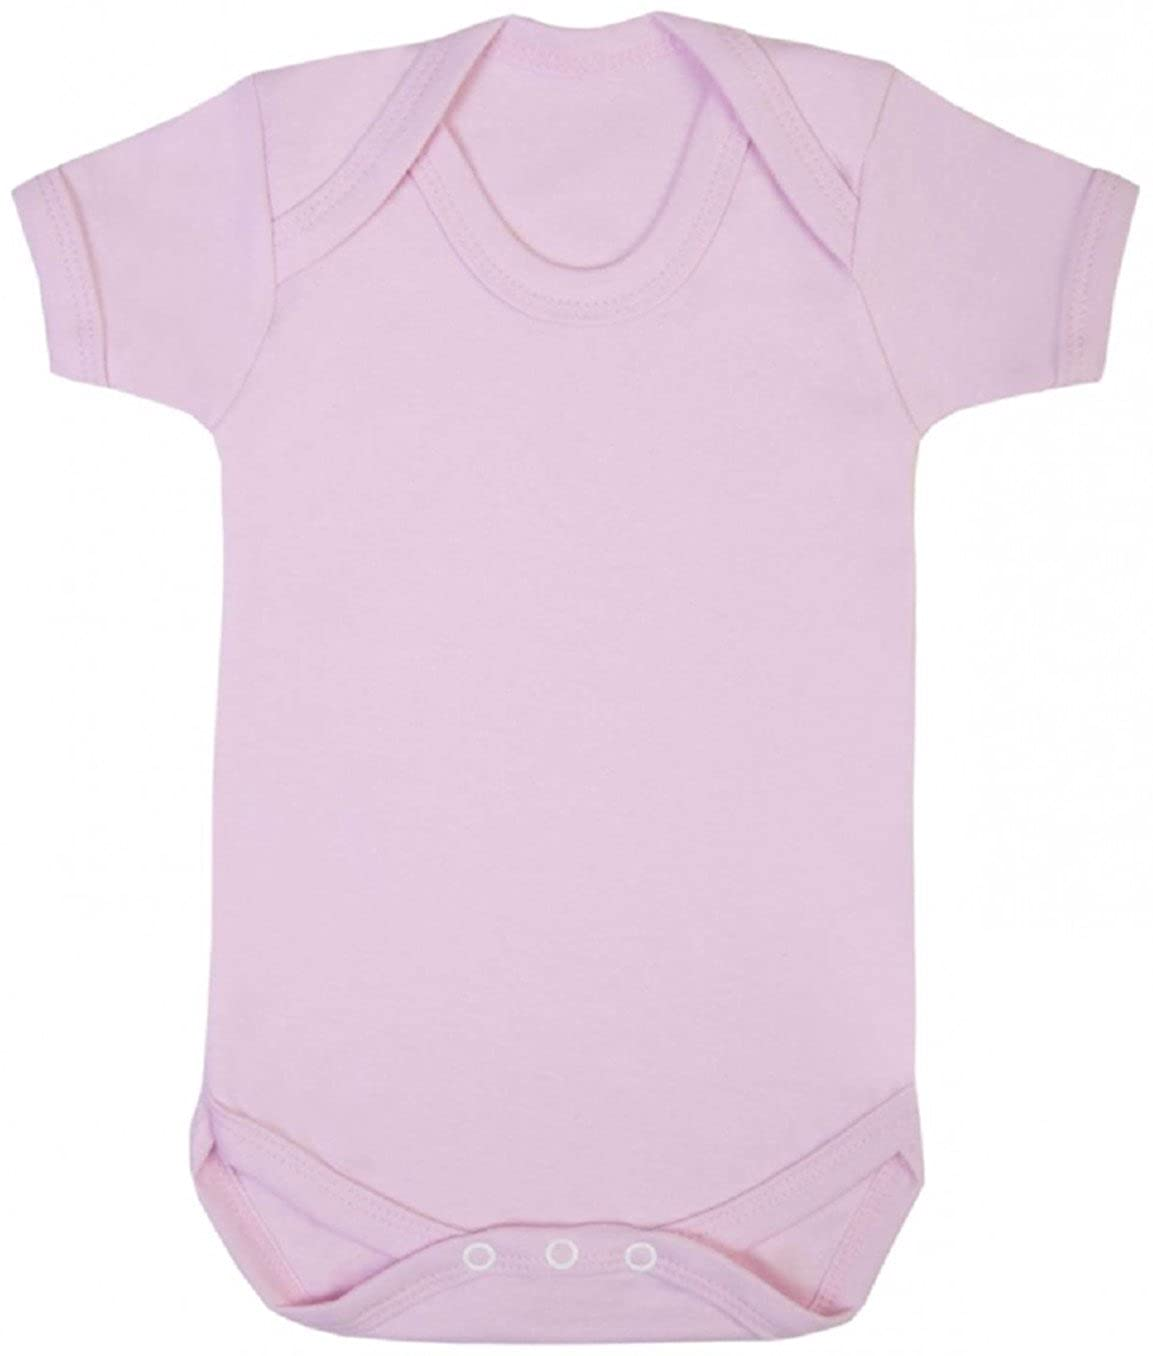 Purple Penguin Clothing Baby Grow - Plain (Blank) In 14 Fantastic Colours